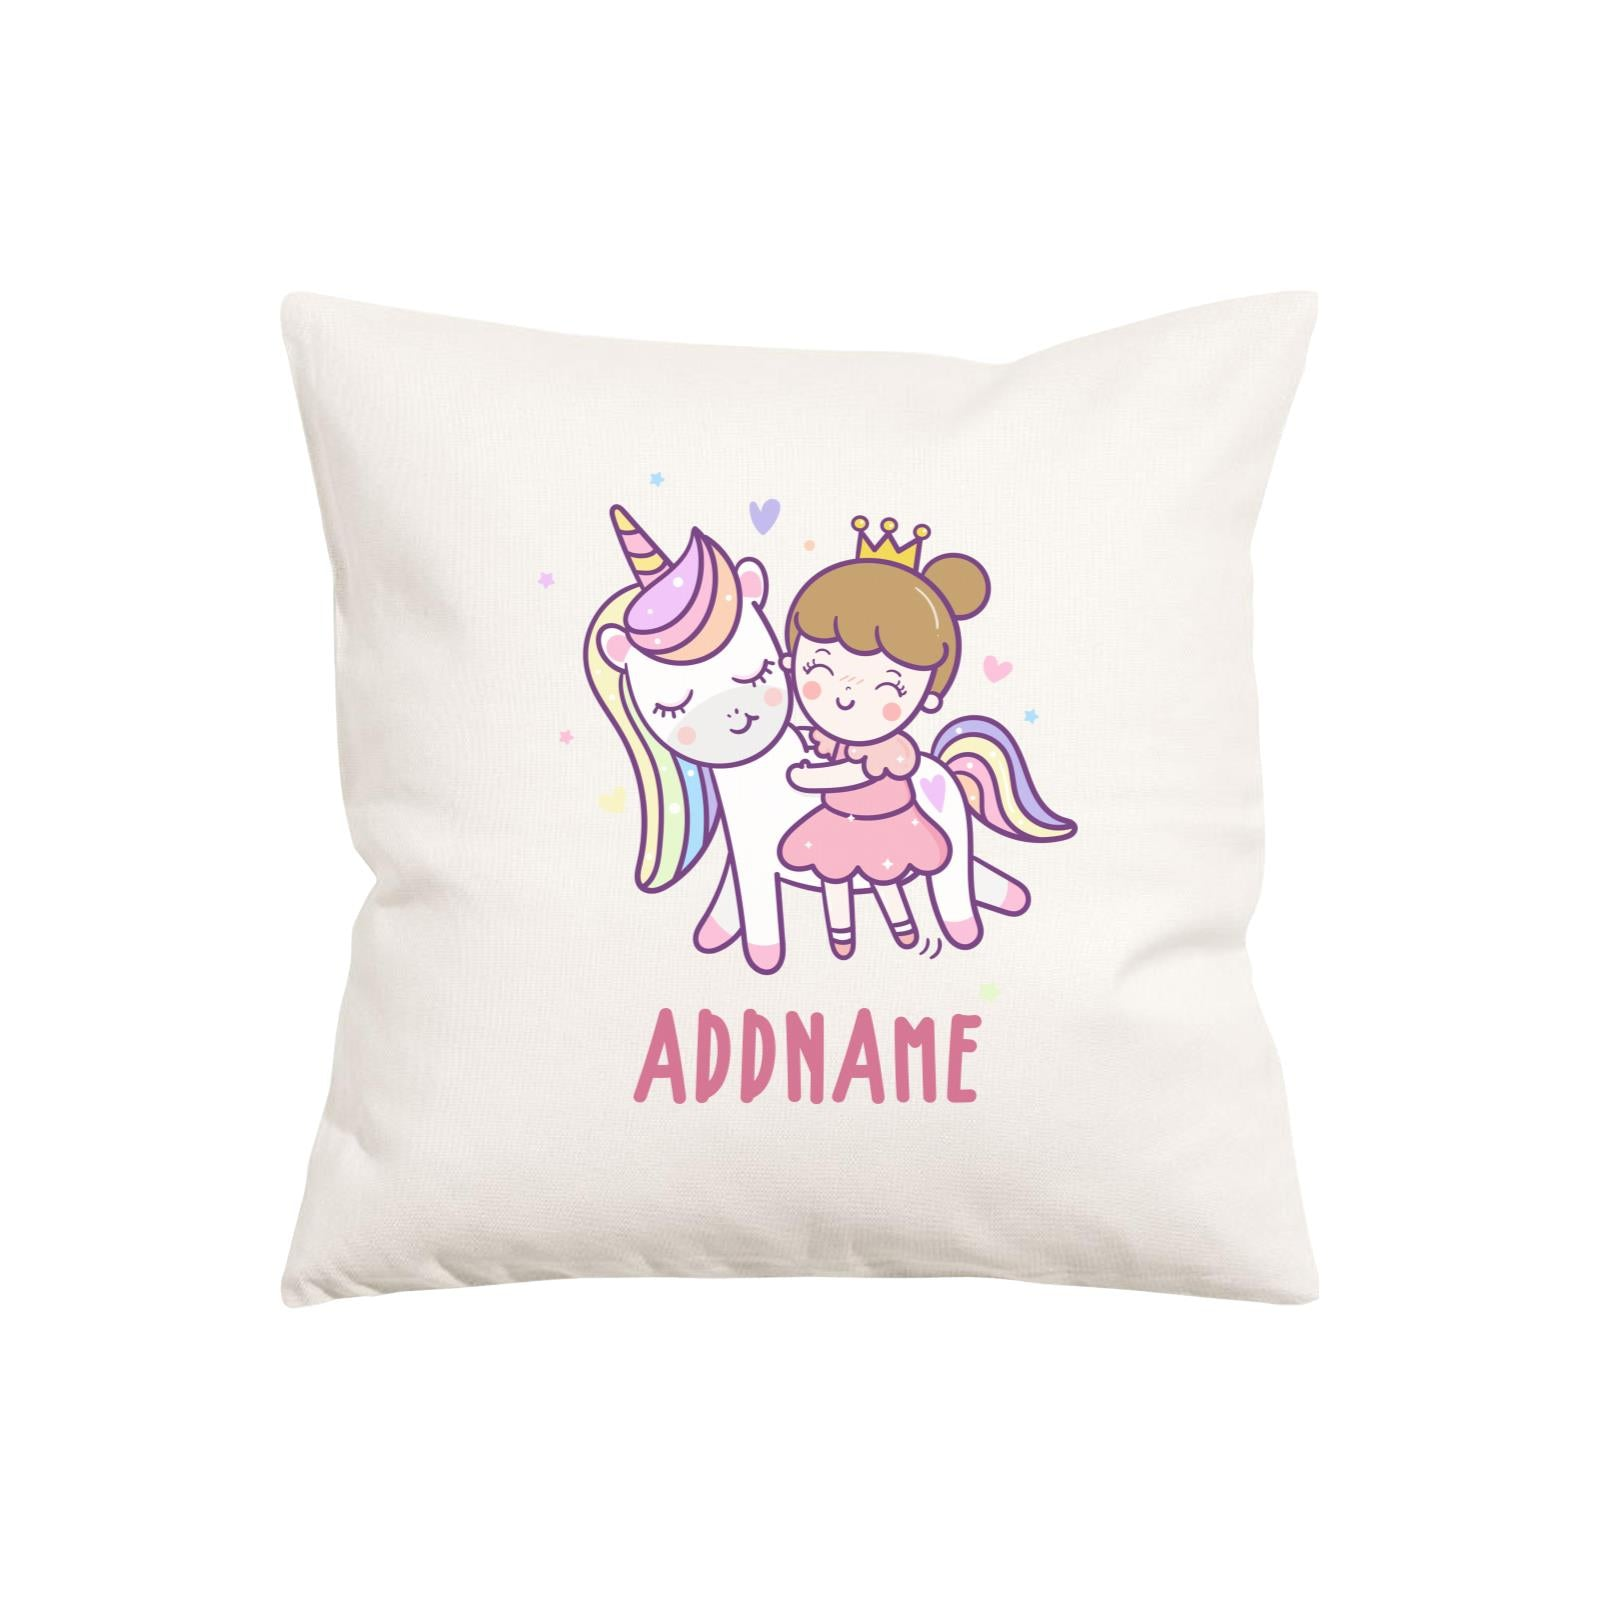 Unicorn And Princess Series Cute Unicorn With Princess Addname Pillow Cushion